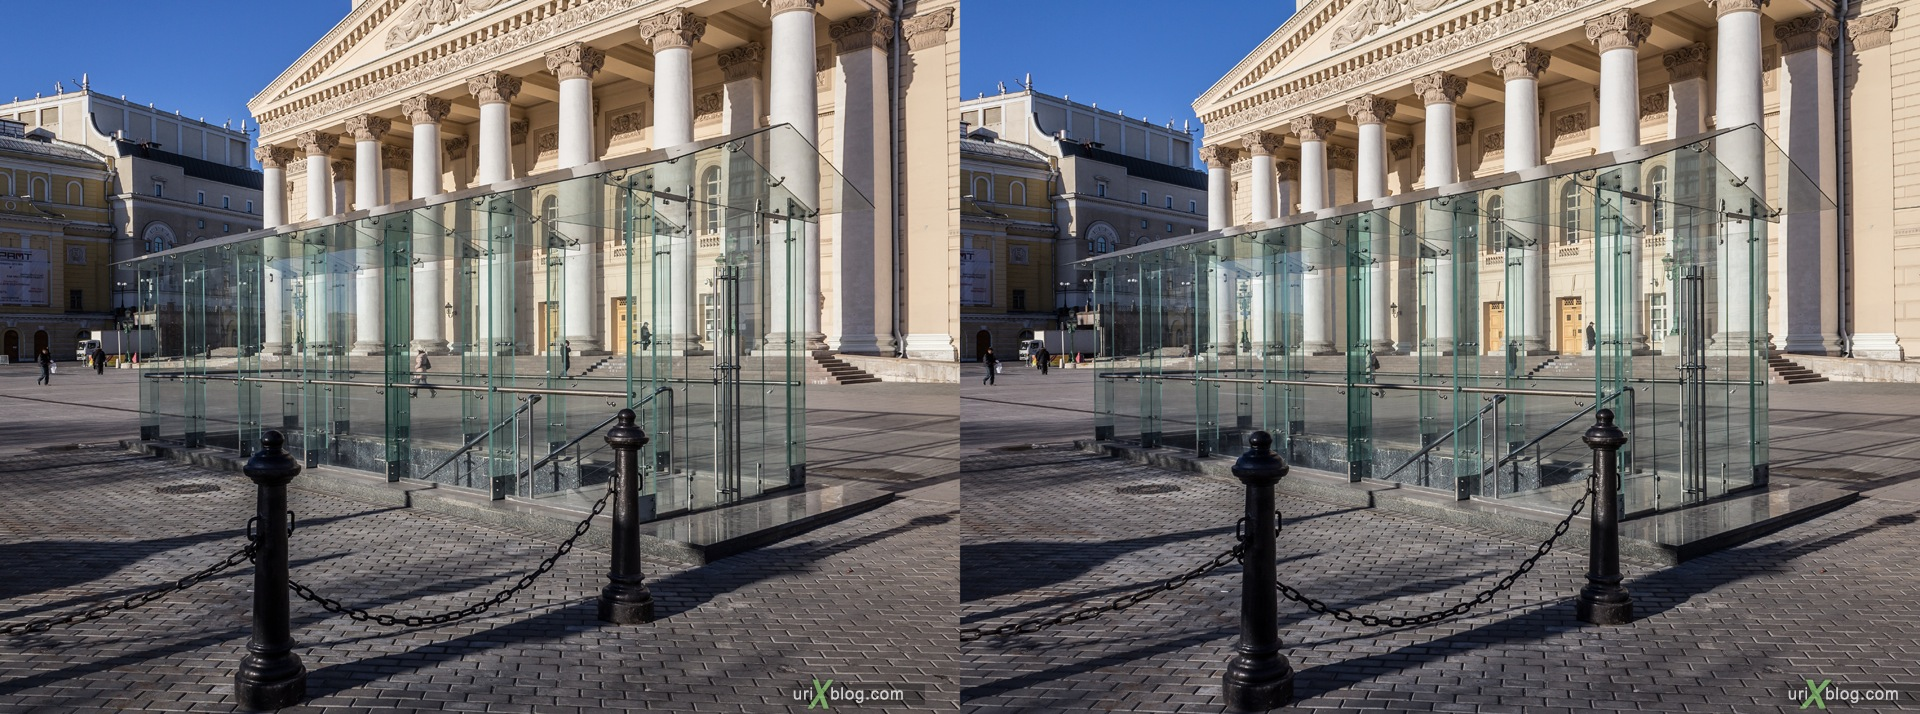 2013, Moscow, Russia, Teatralnaya square, Theatre square, Bolshow theatre, Grand theatre, 3D, stereo pair, cross-eyed, crossview, cross view stereo pair, stereoscopic